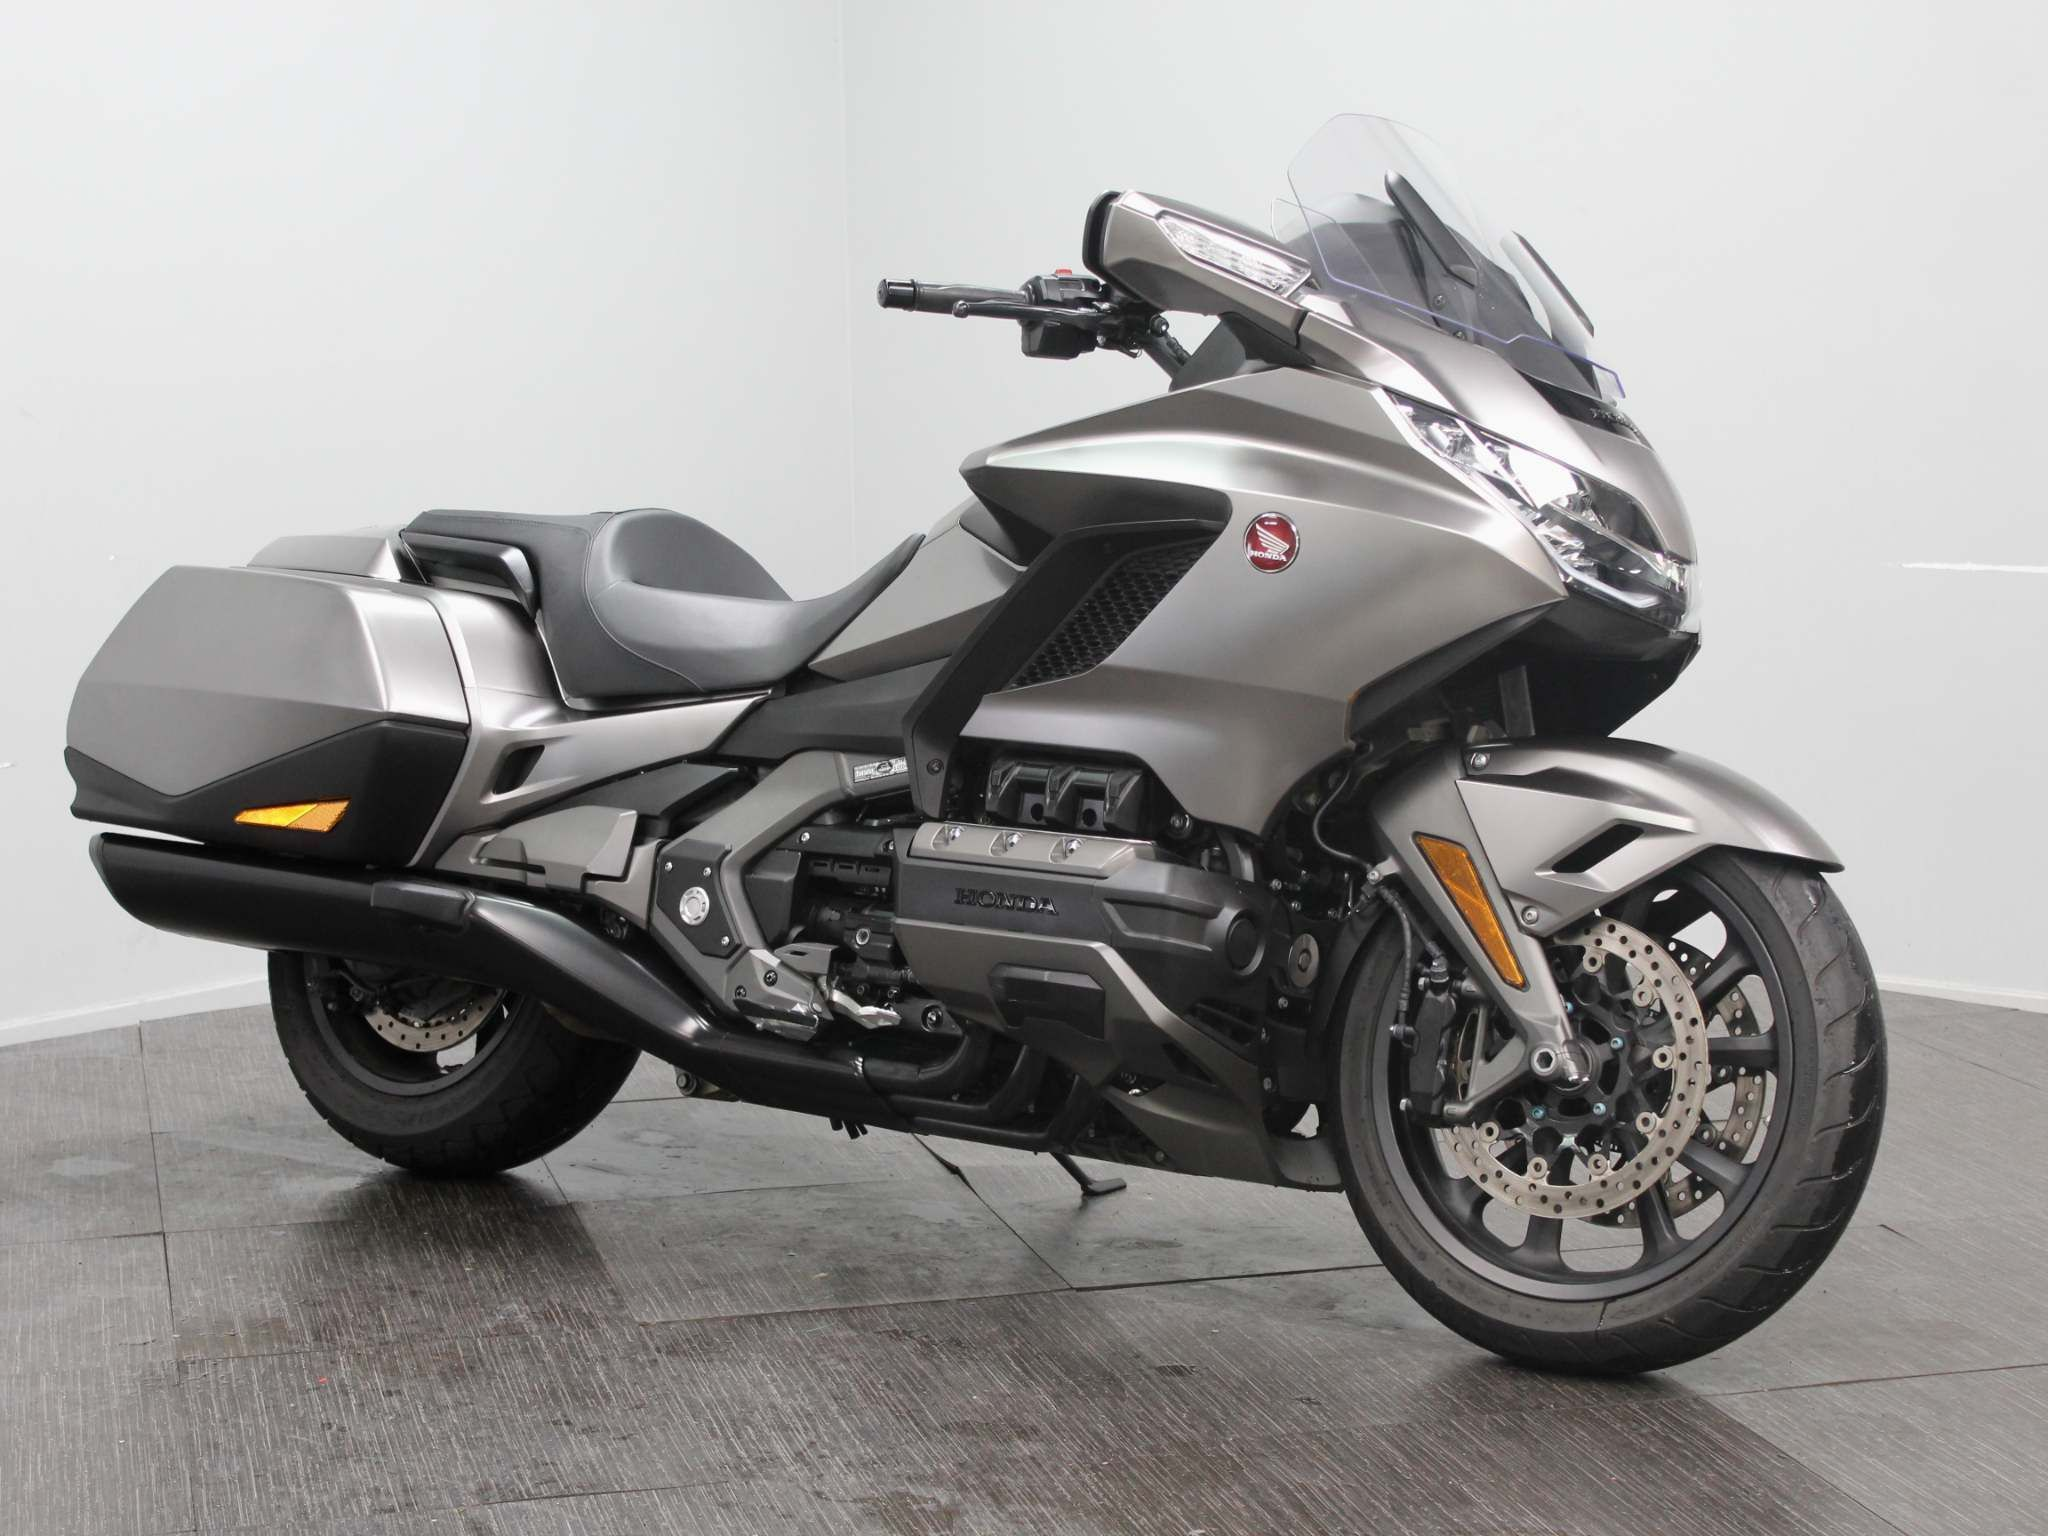 Honda Gold Wing GL1800 Images